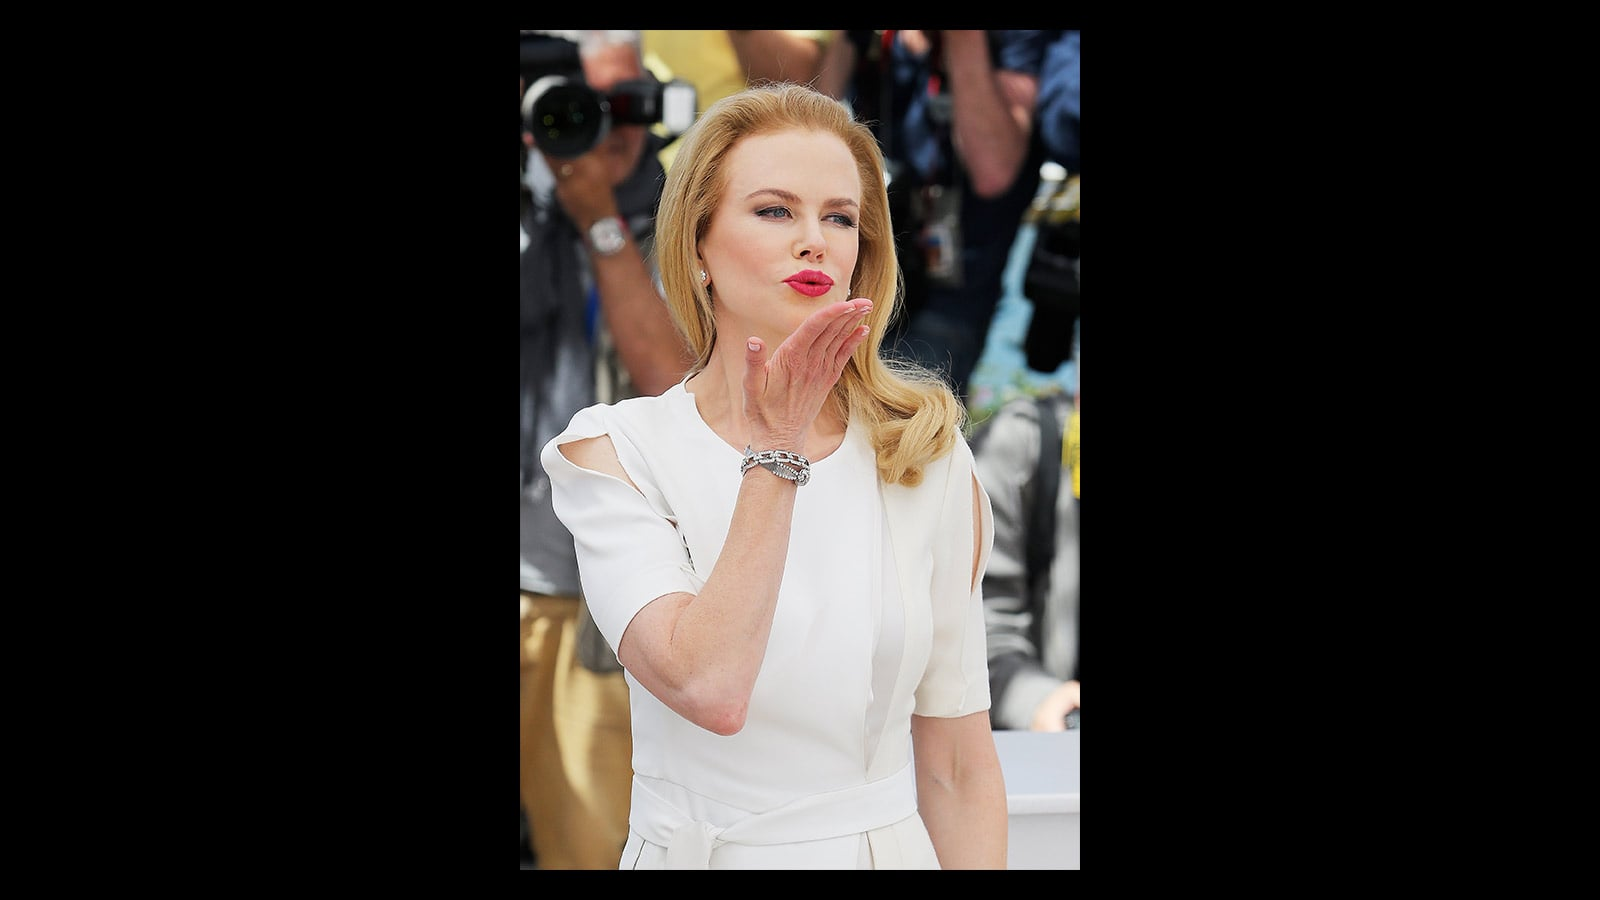 Picture of Nicole Kidman in white outfit sending a kiss